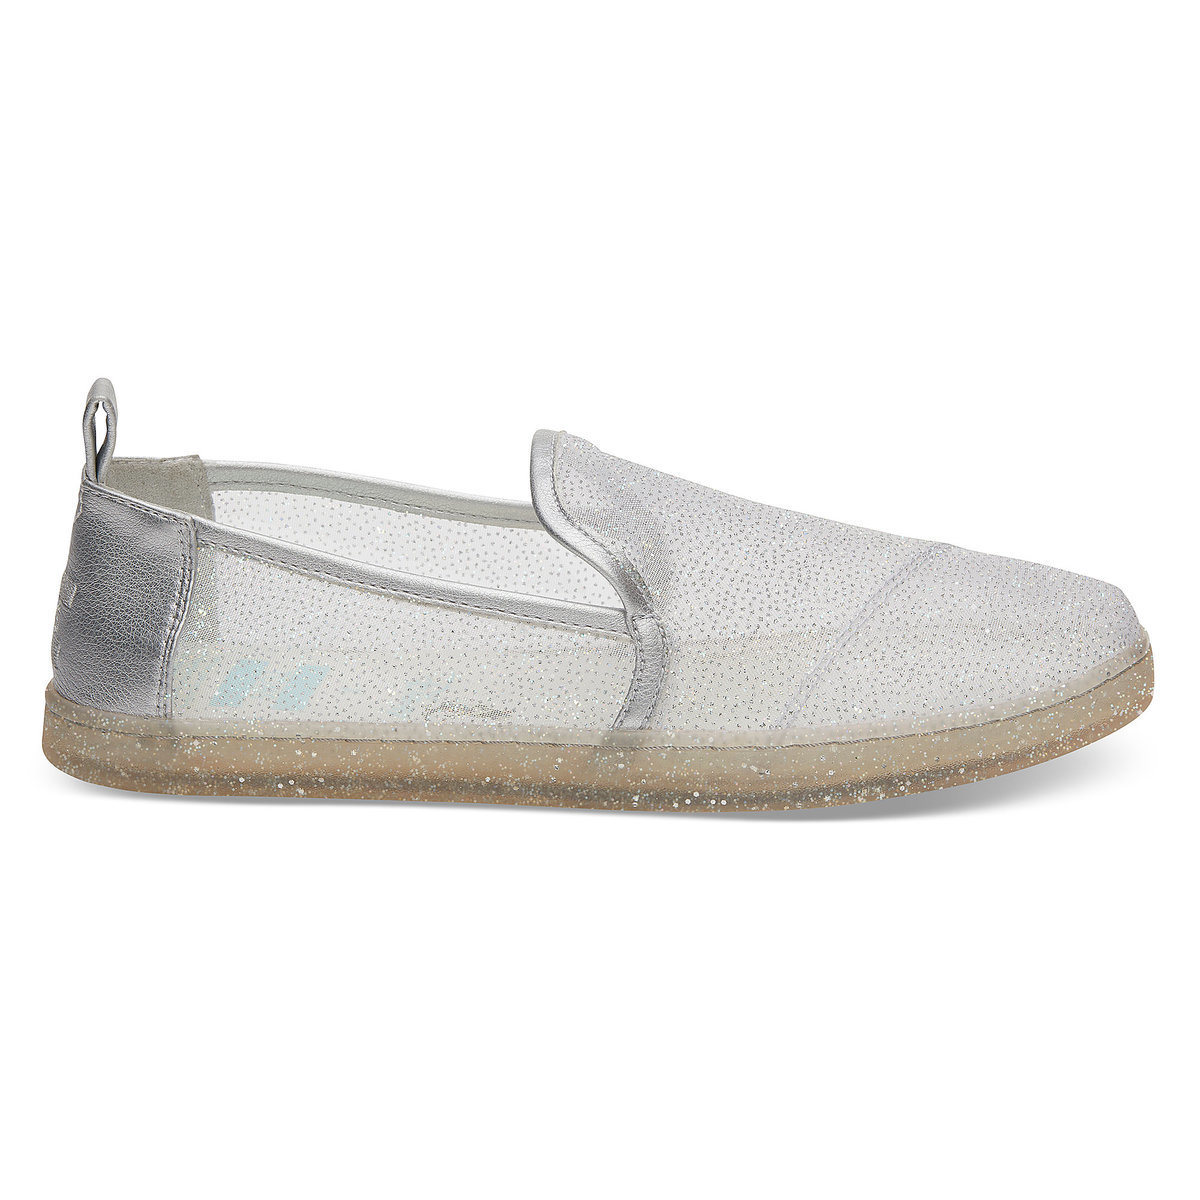 07865100576 Product Image of Gus and Jaq Glitter Mesh Shoes for Women by TOMS -  Cinderella